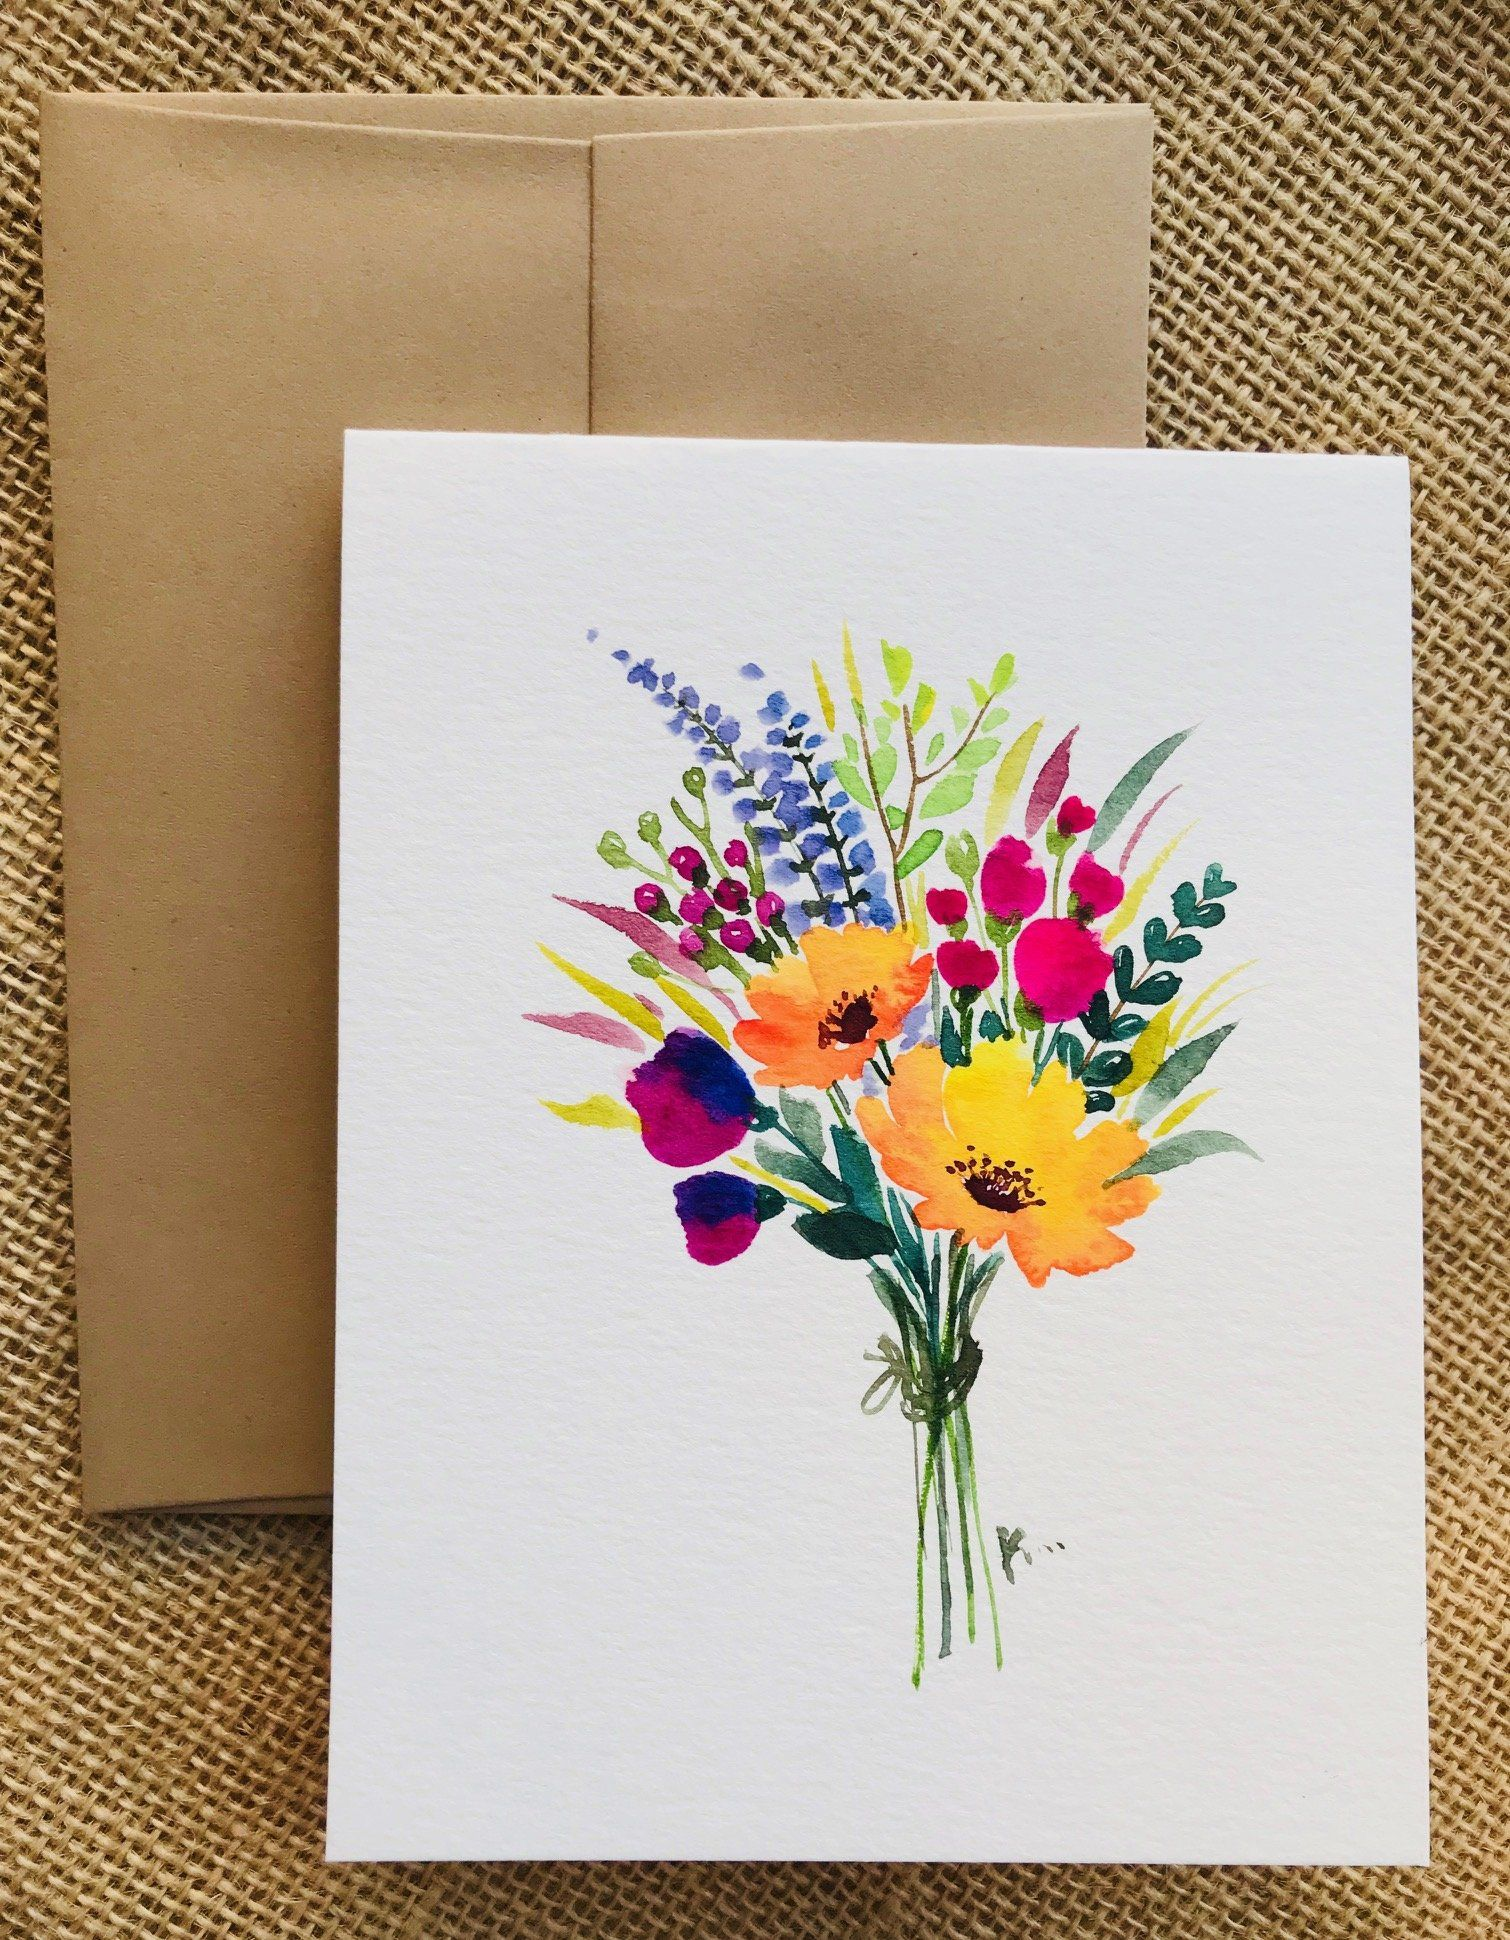 Birthday Card Painting : birthday, painting, Painted, Greeting, Cards, Flowers, Flower, Drawing,, Watercolor, Cards,